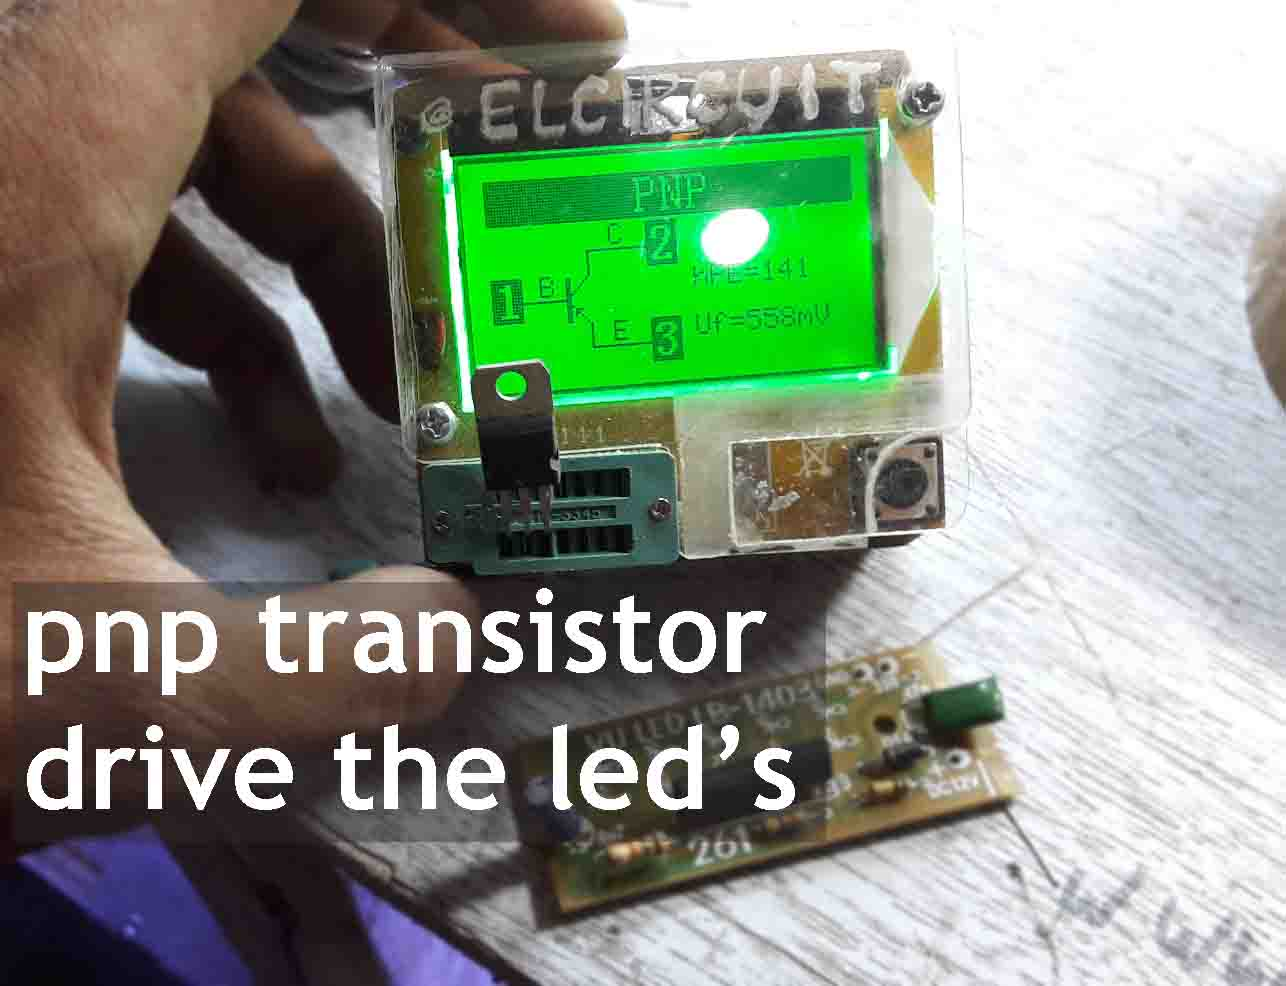 FqWXQ0PDCl8 together with 2 30v 5  Power Supply Regulator With Lm3177412sa1186 as well Can I Use Tip42 As Q1 moreover 96je88 additionally 622904192186245297. on tip42 circuits